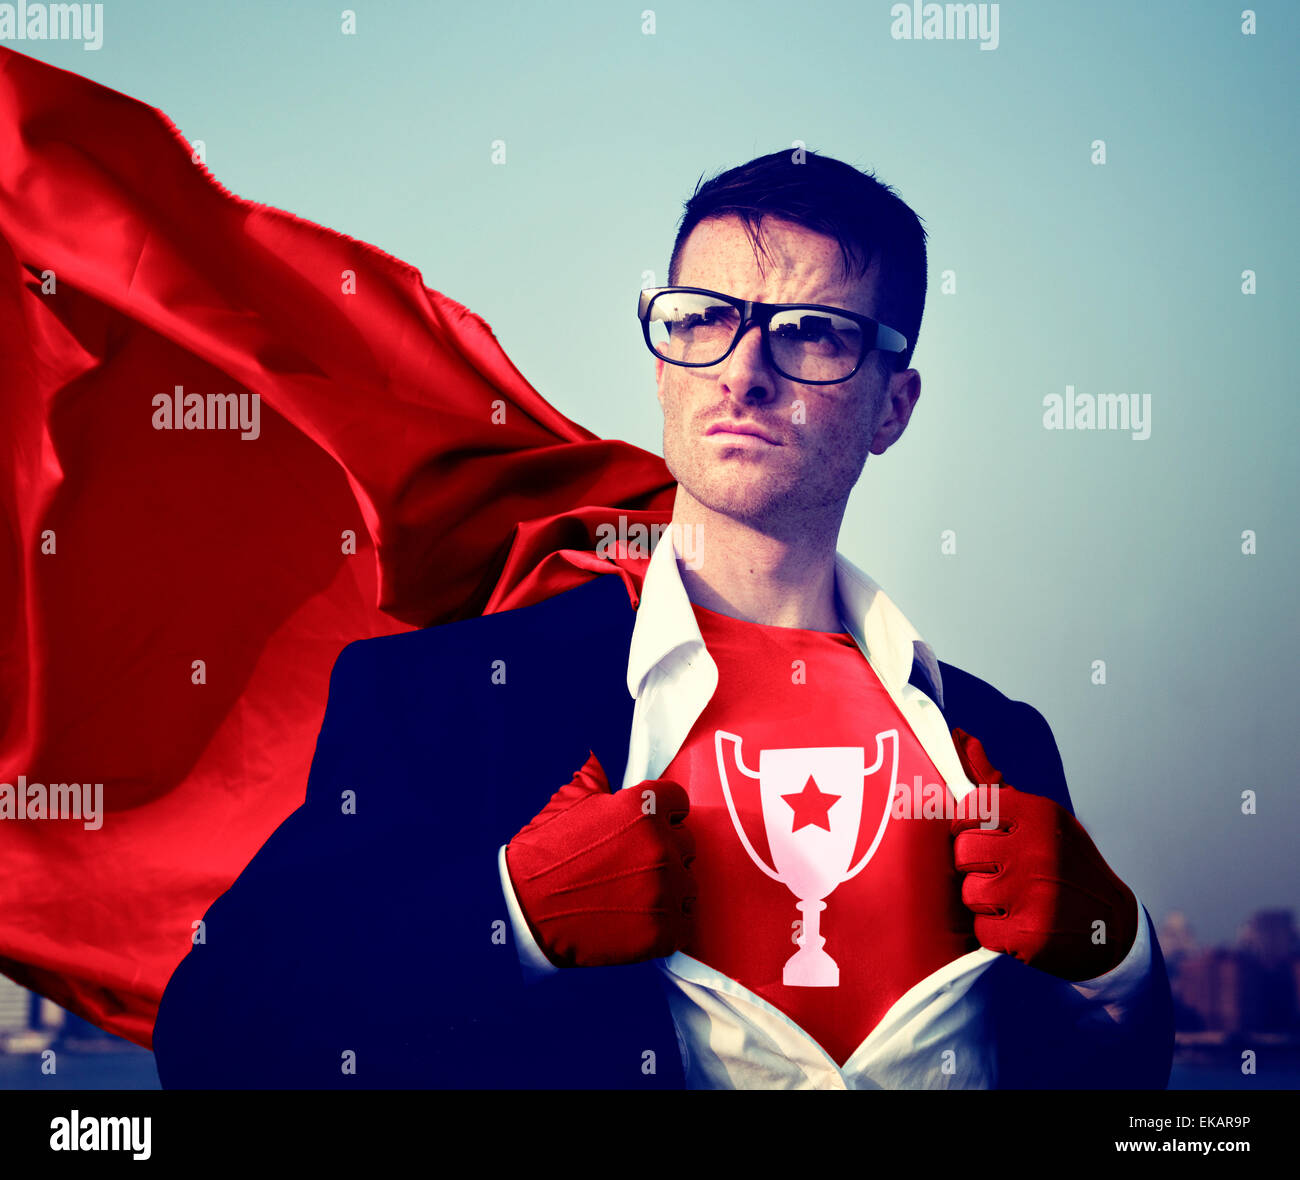 Trophy Strong Superhero Success Professional Empowerment Stock Concept - Stock Image